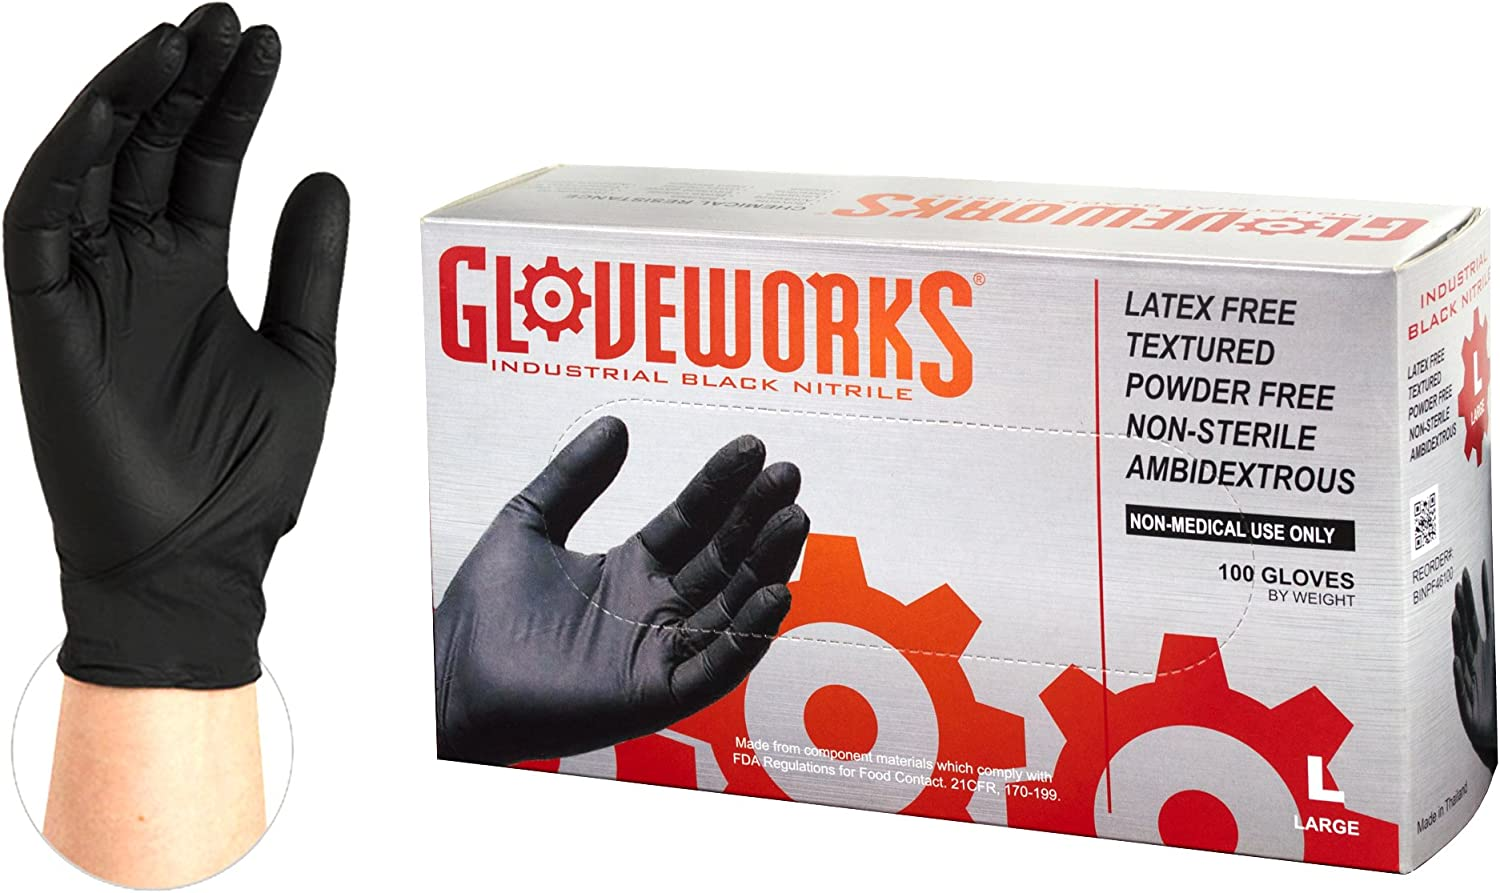 The 9 Best Gloves For Nail Technician 2019 Reviews